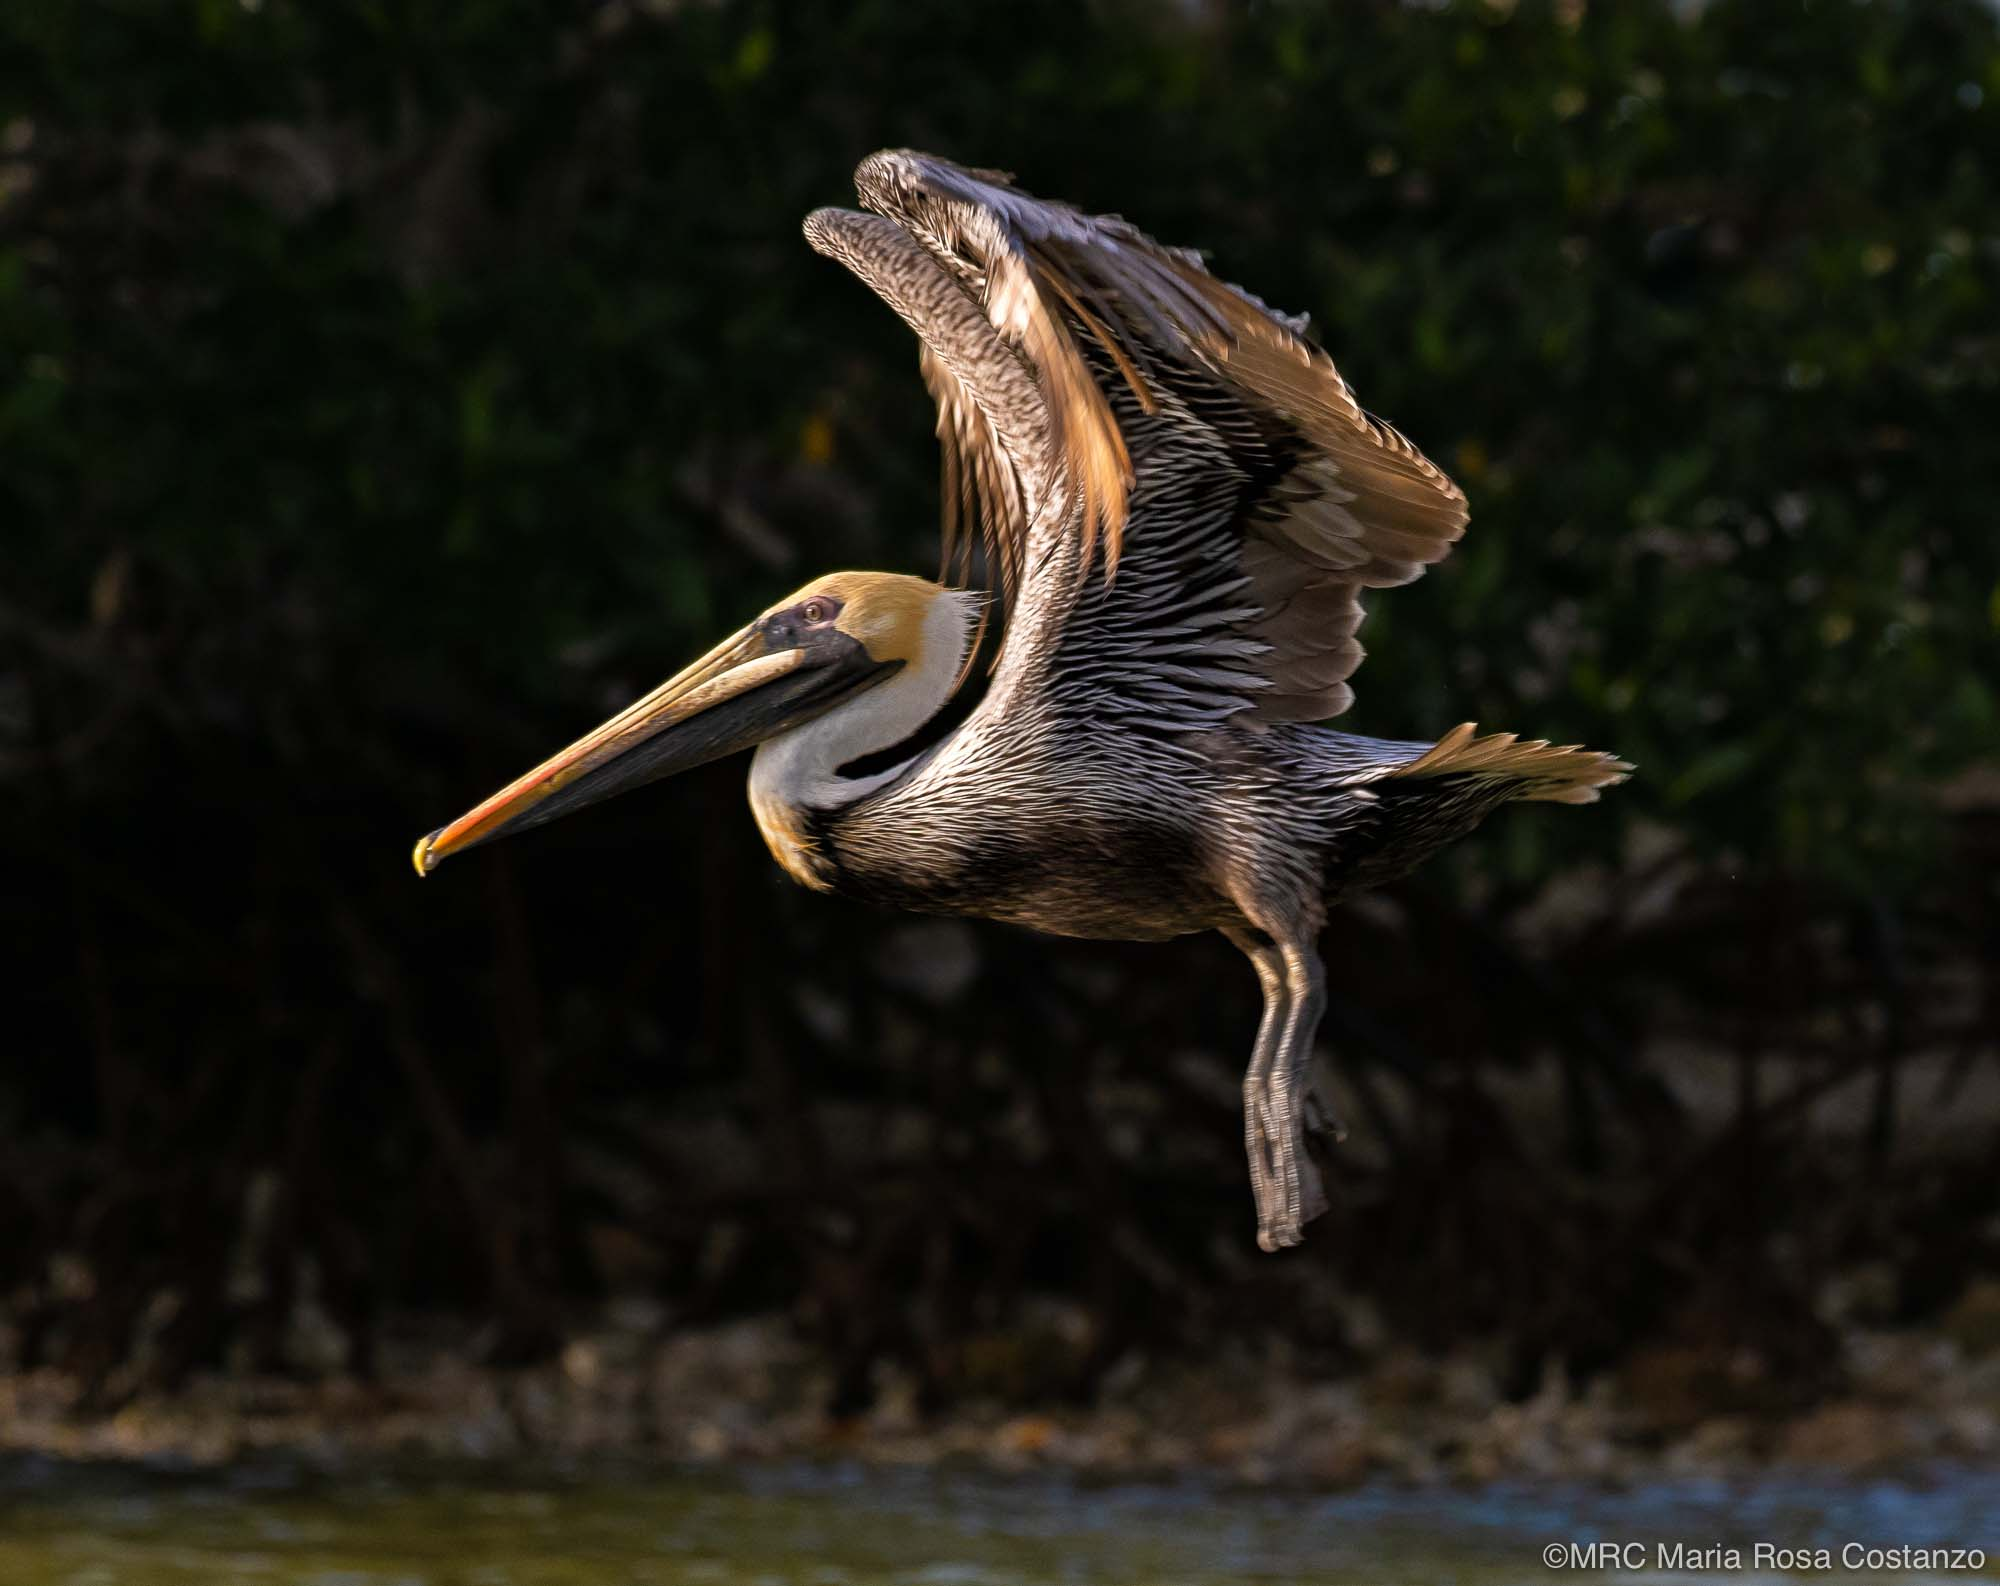 Eastern Brown Pelican photographed by Maria Rosa Costanzo, student with Potter School of Photography. Photo created on safari in Everglades National Park, Florida, USA